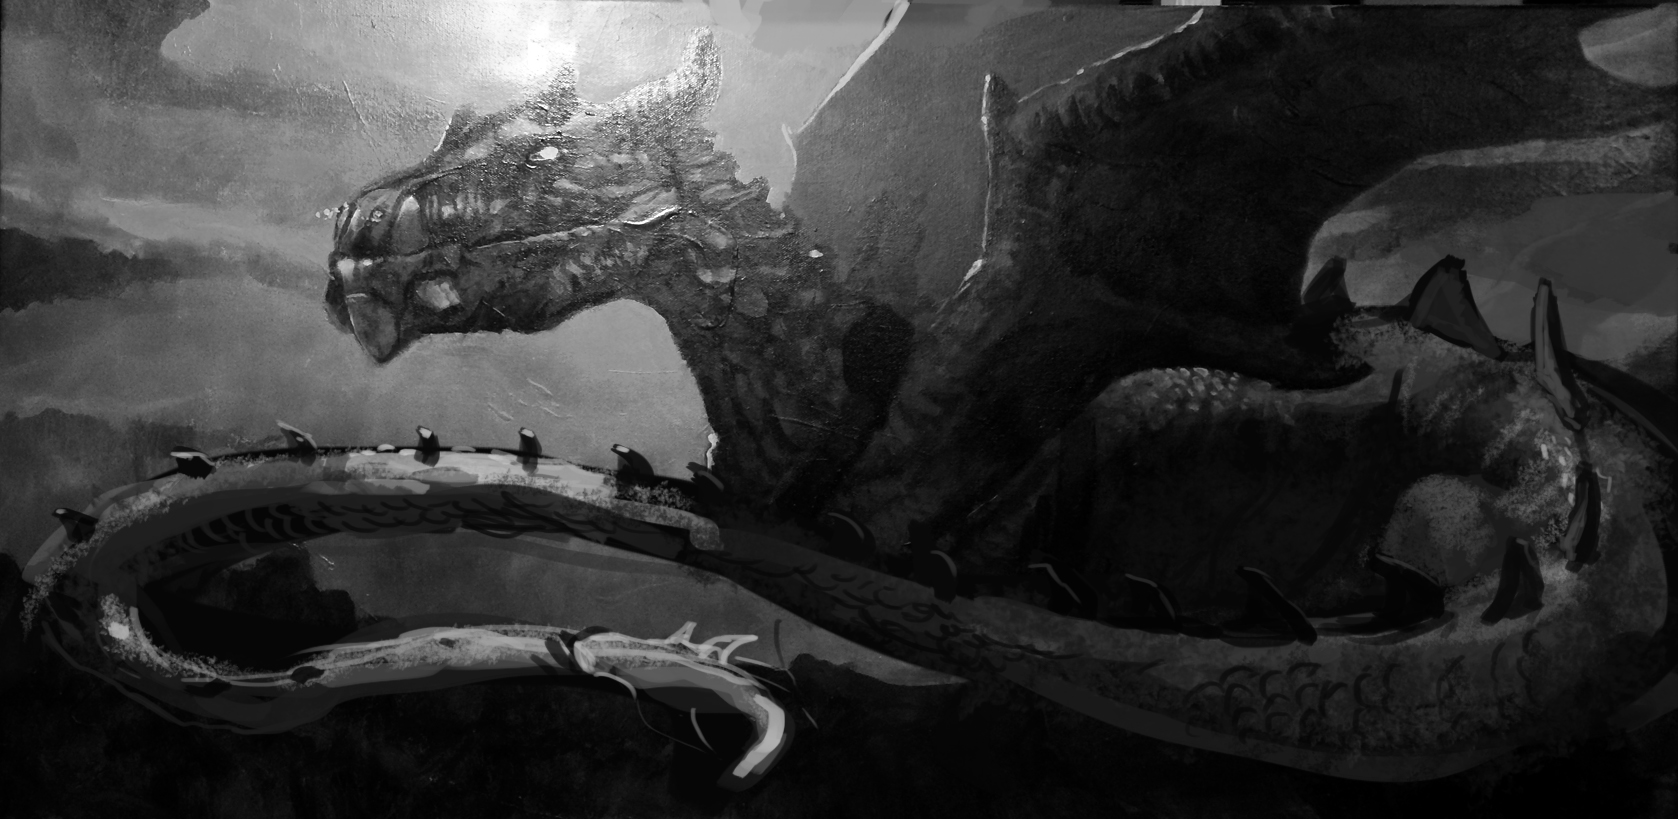 Dragon painting re-worked in Photoshop.